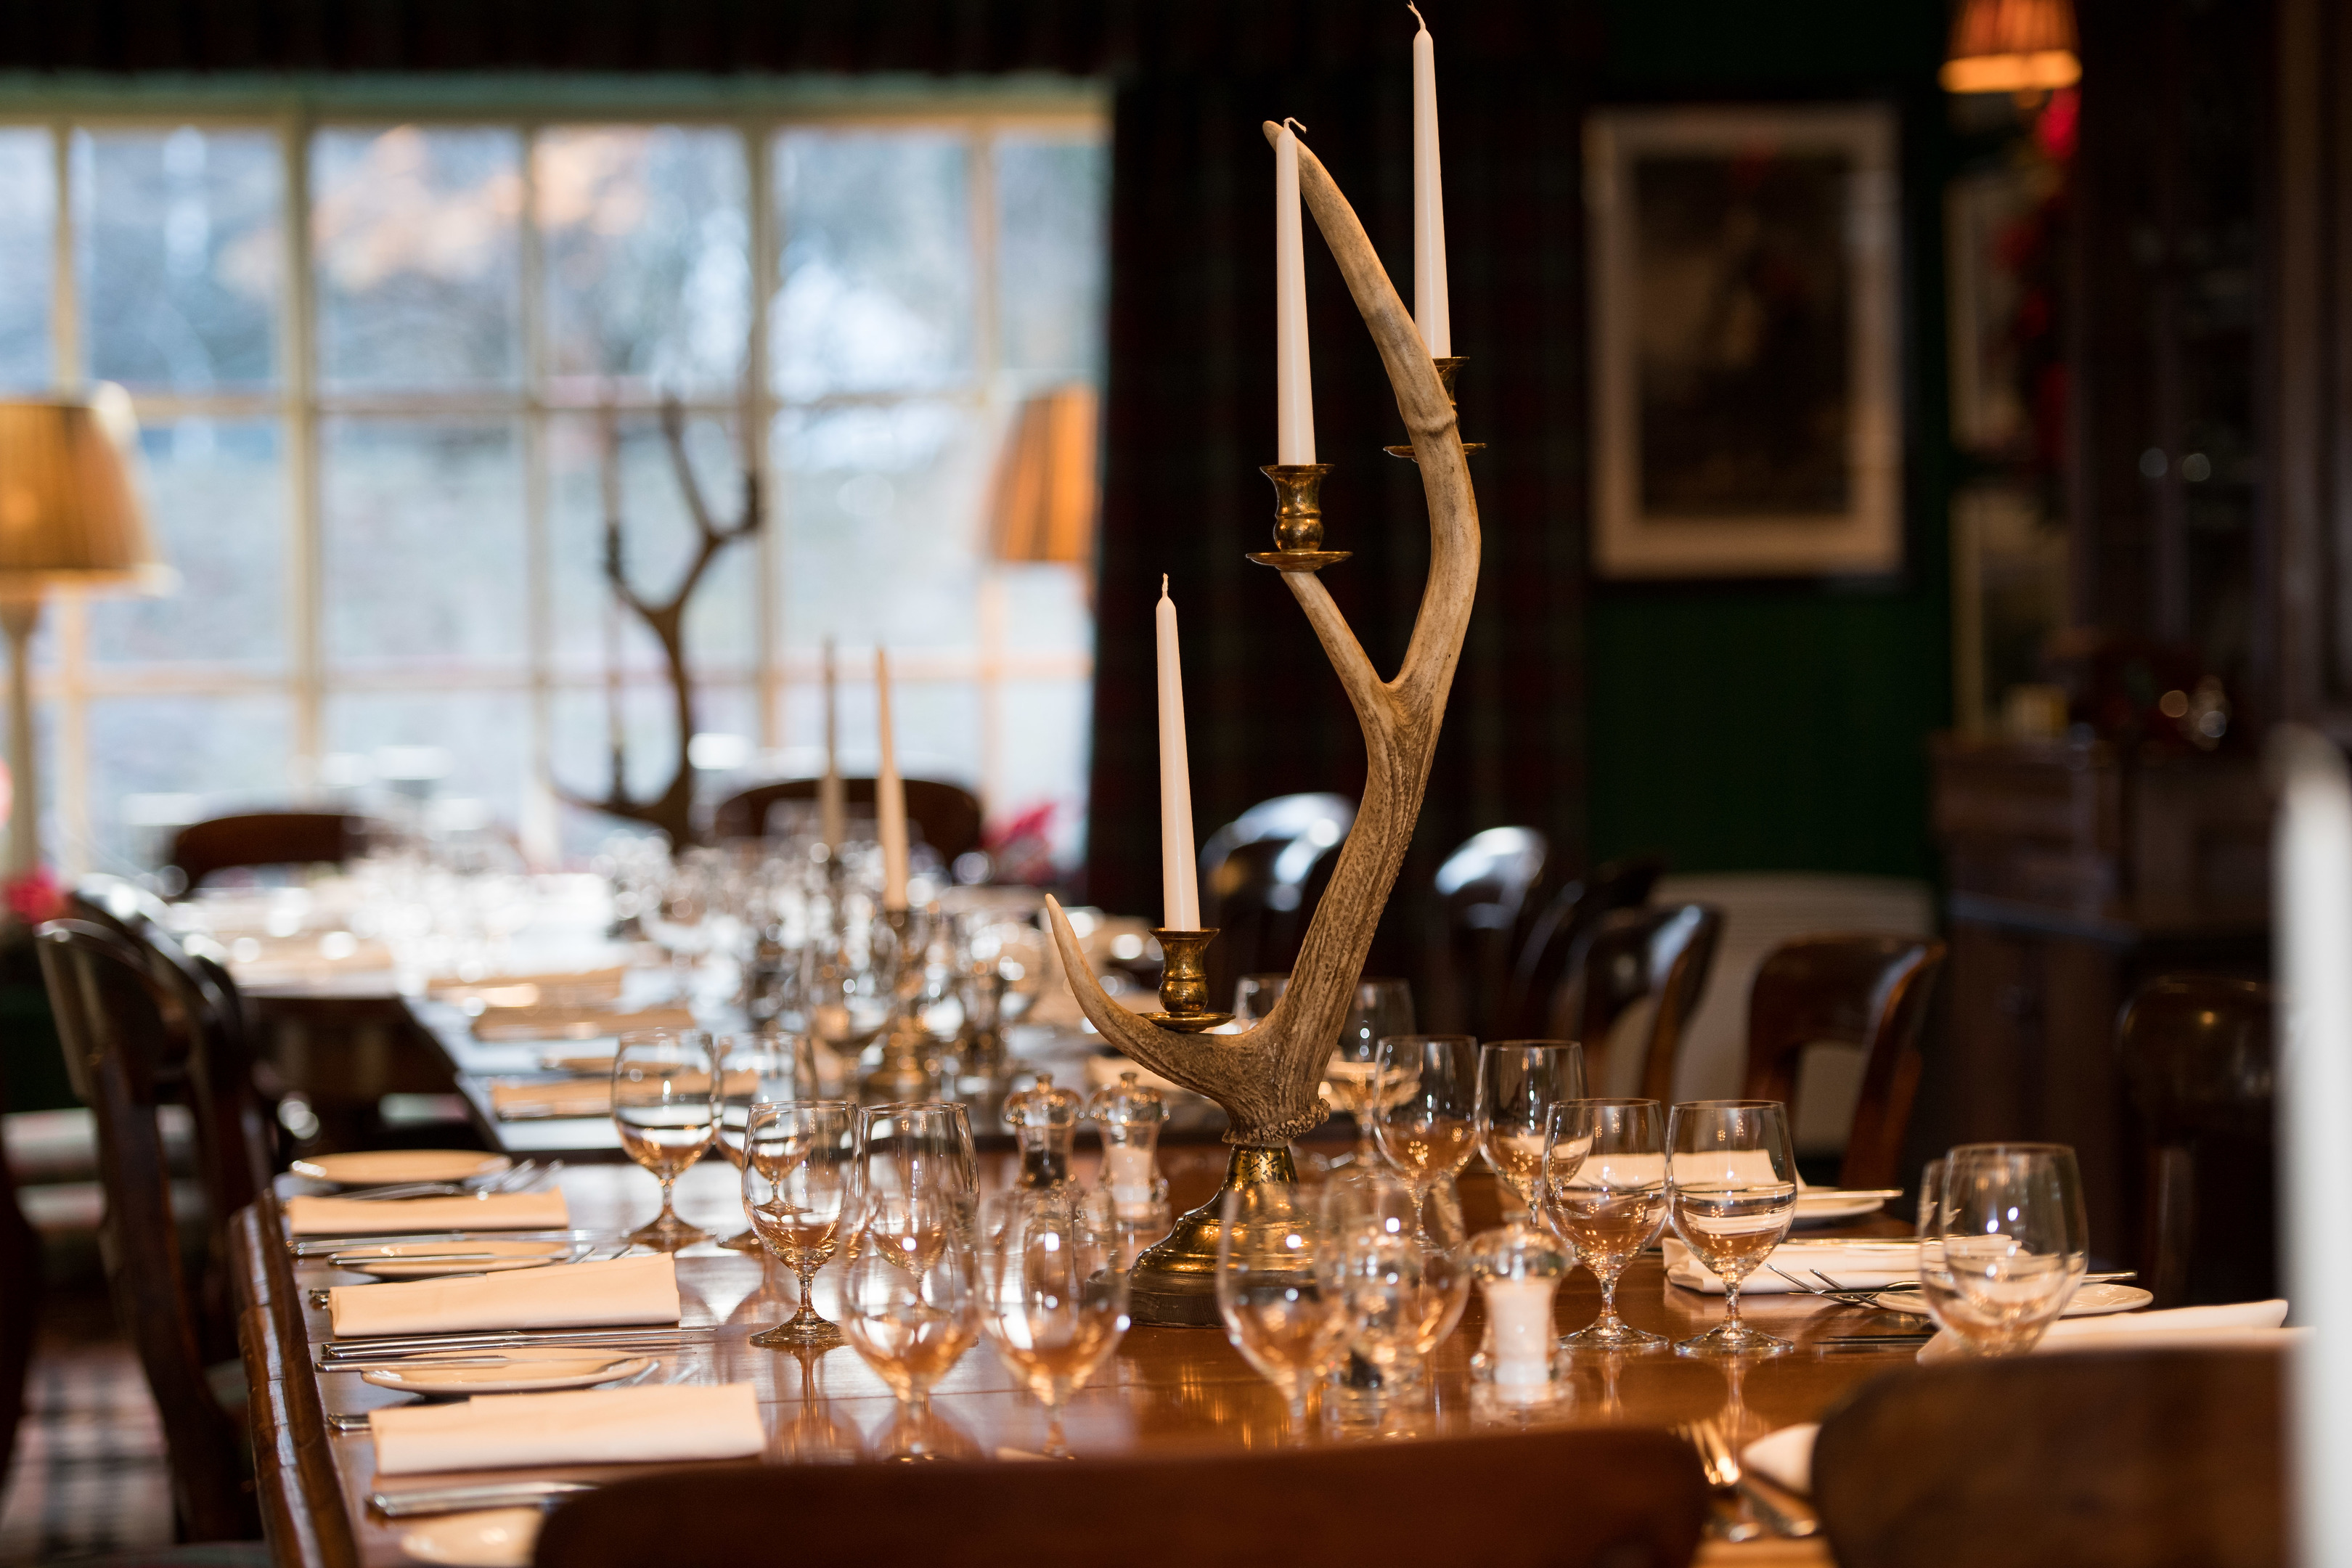 The Rothesay Rooms is the best restaurant in Aberdeenshire according to TripAdvisor users.